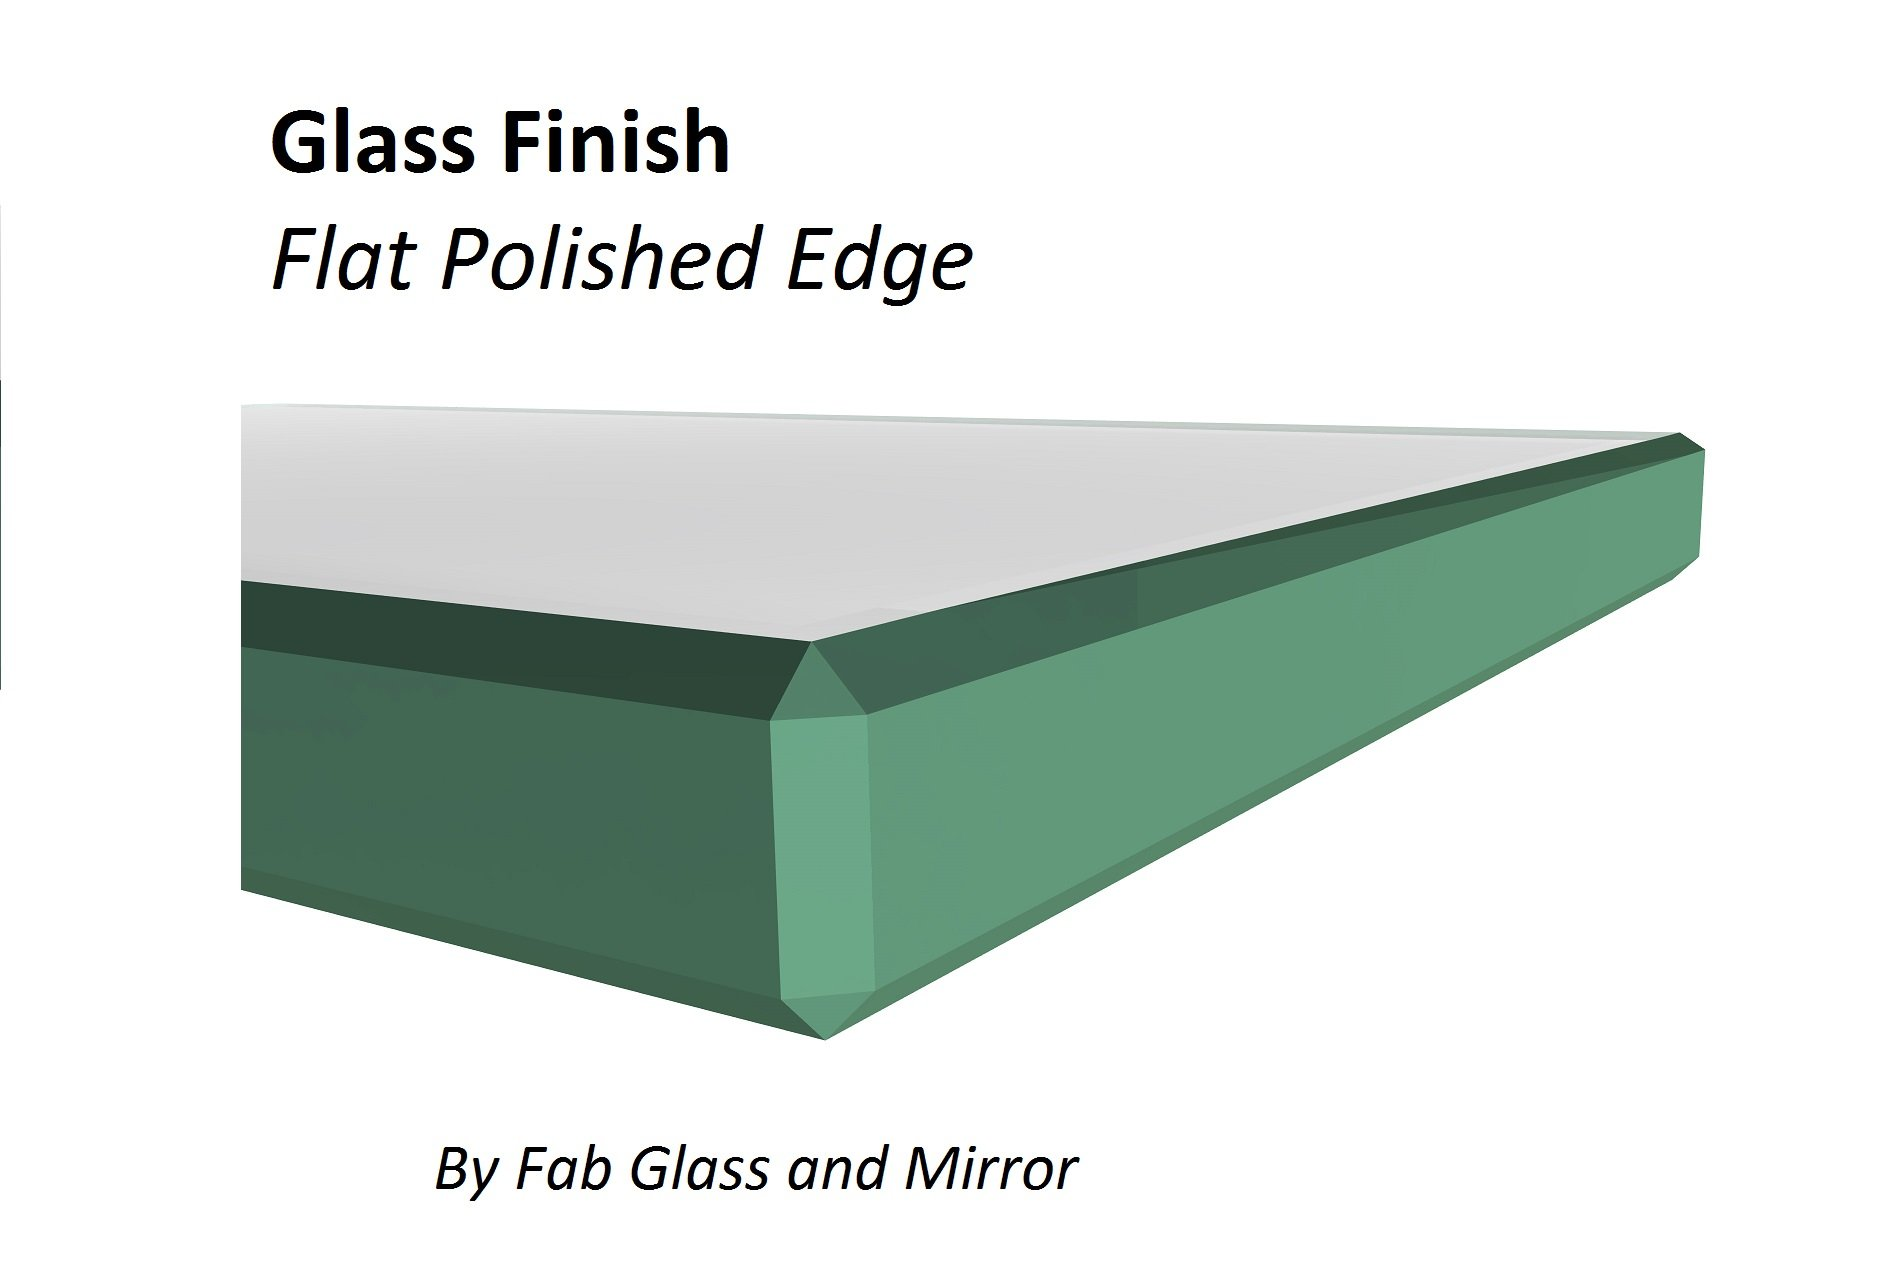 Fab Glass and Mirror 22SQR6THFLTE 22'' Clear Square 1/4'' Inch Thick Tempered Flat Edge Polished Eased Corners Glass Table Top, by Fab Glass and Mirror